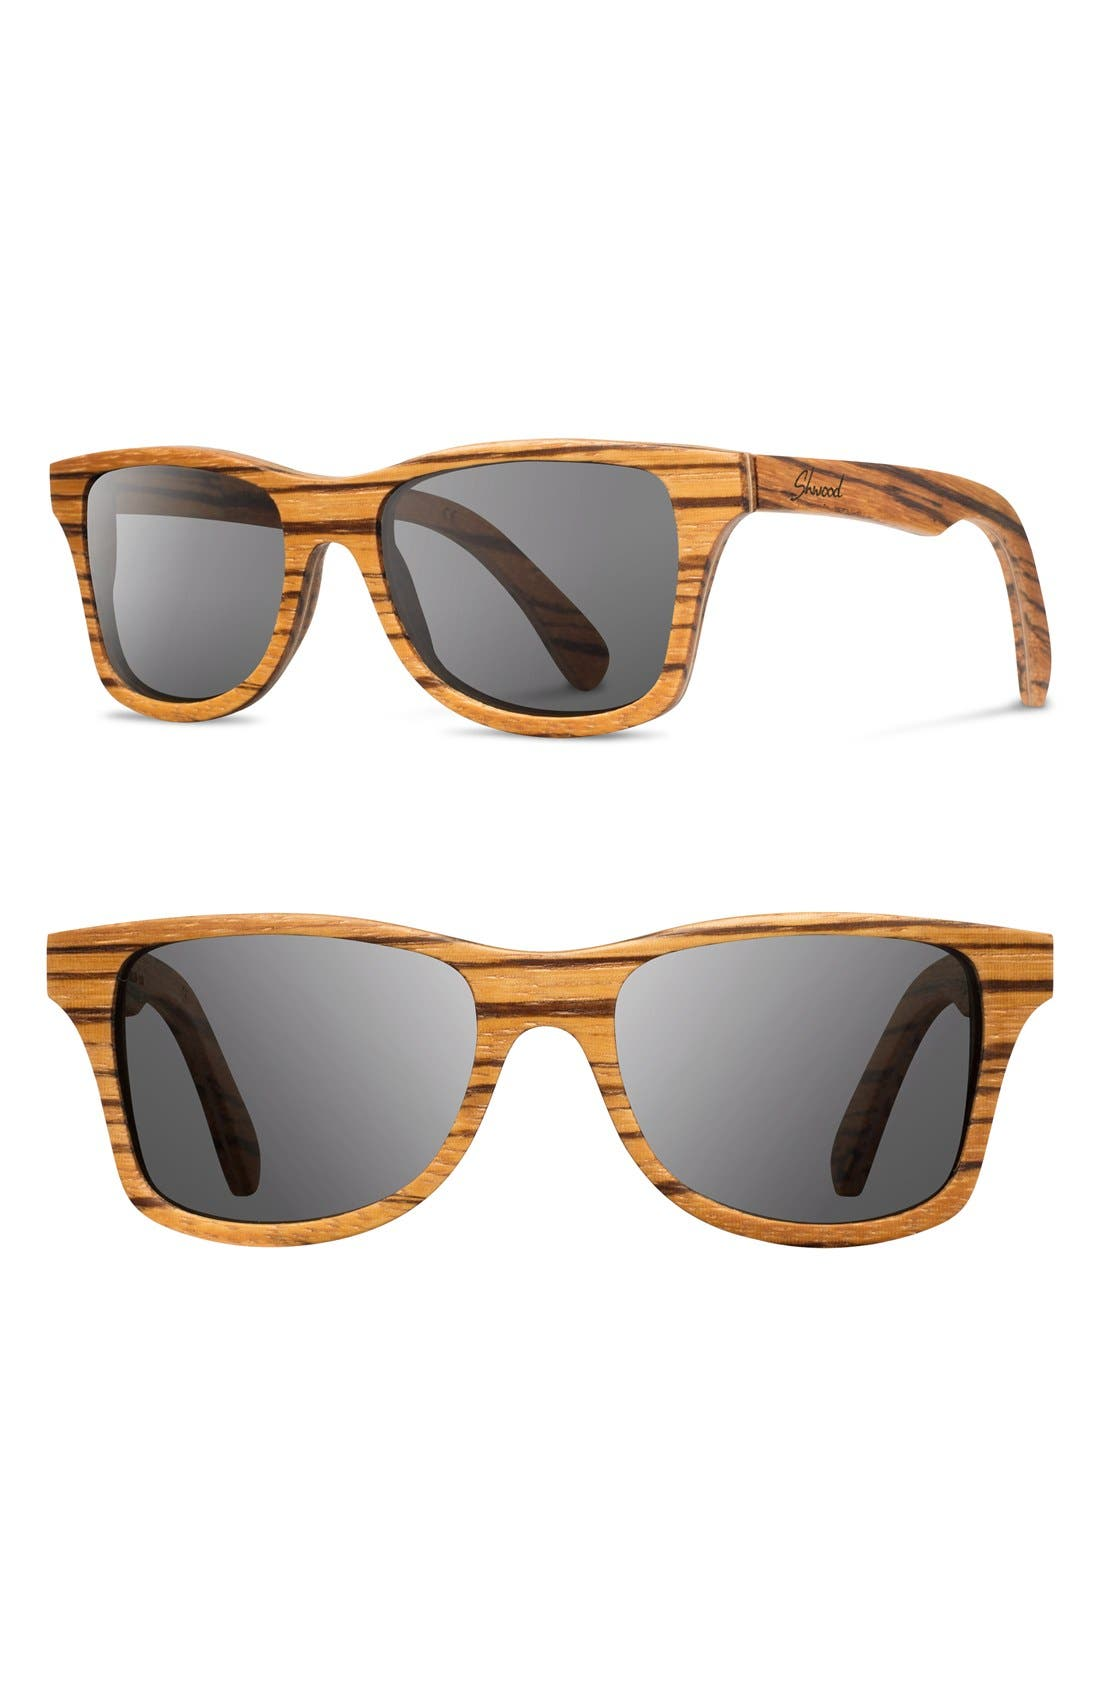 'Canby' 54mm Wood Sunglasses,                         Main,                         color, 200